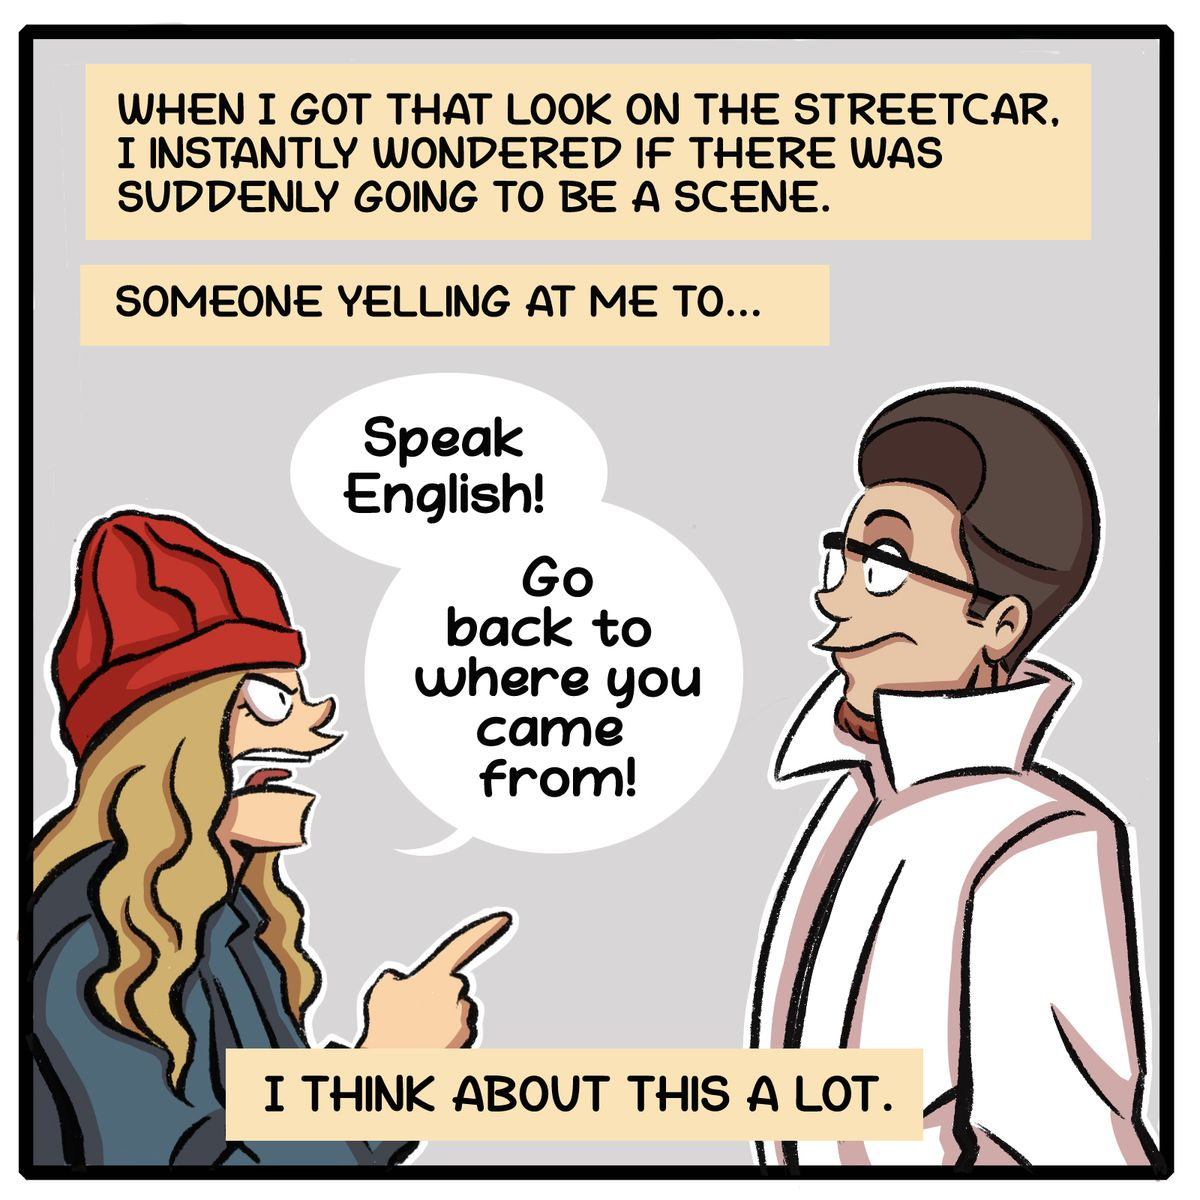 """When I got that look on the streetcar, I instantly wondered if there was suddenly going to be a scene. Someone yelling at me to """"Speak English! Go back to where you came from!"""" I think about this a lot."""